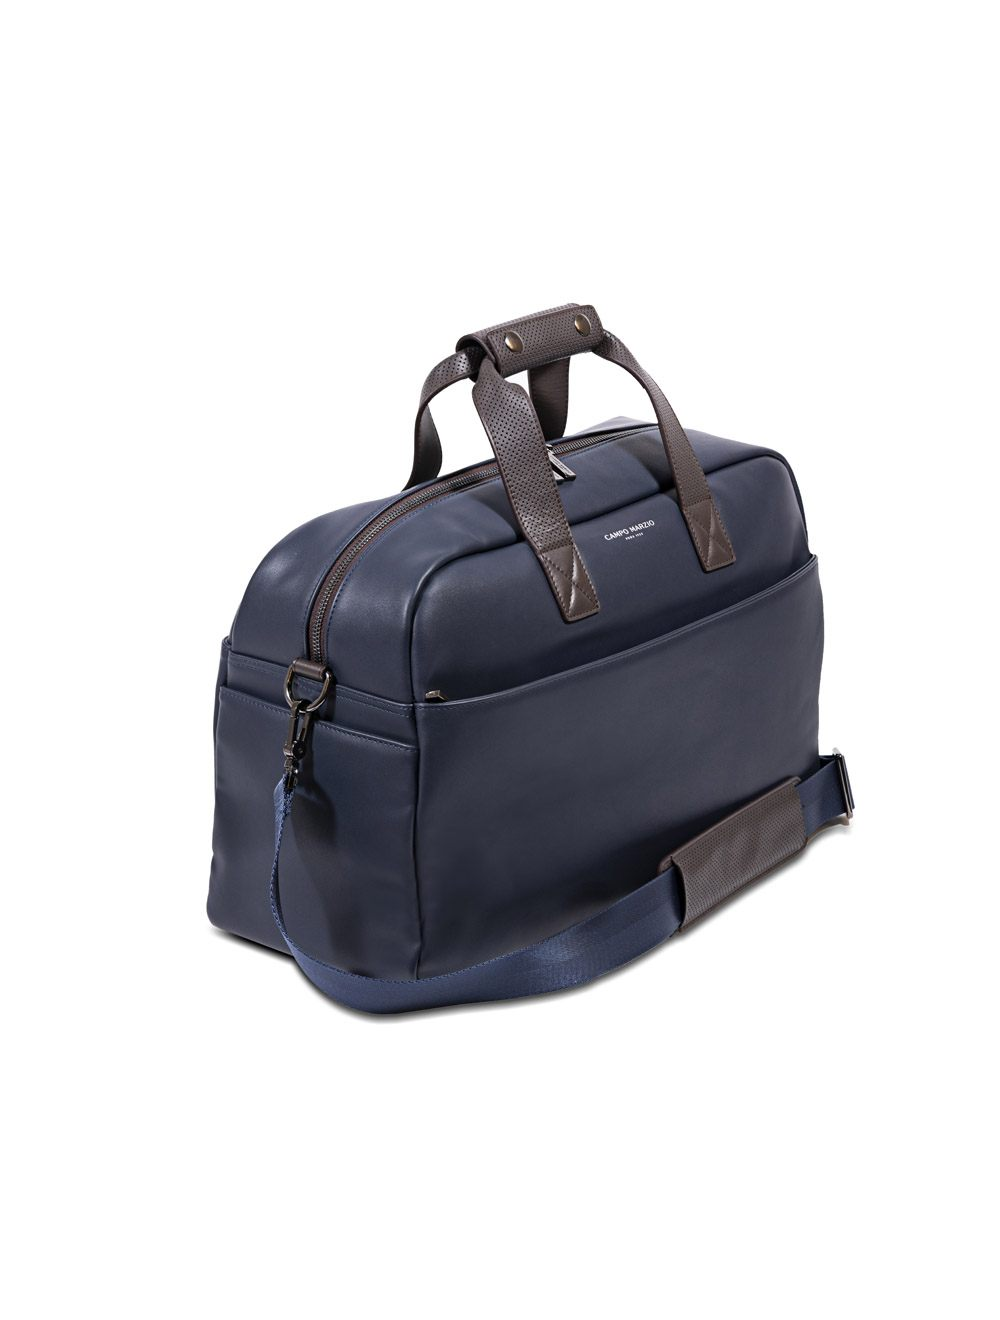 City Bag F28 - Ocean Blue